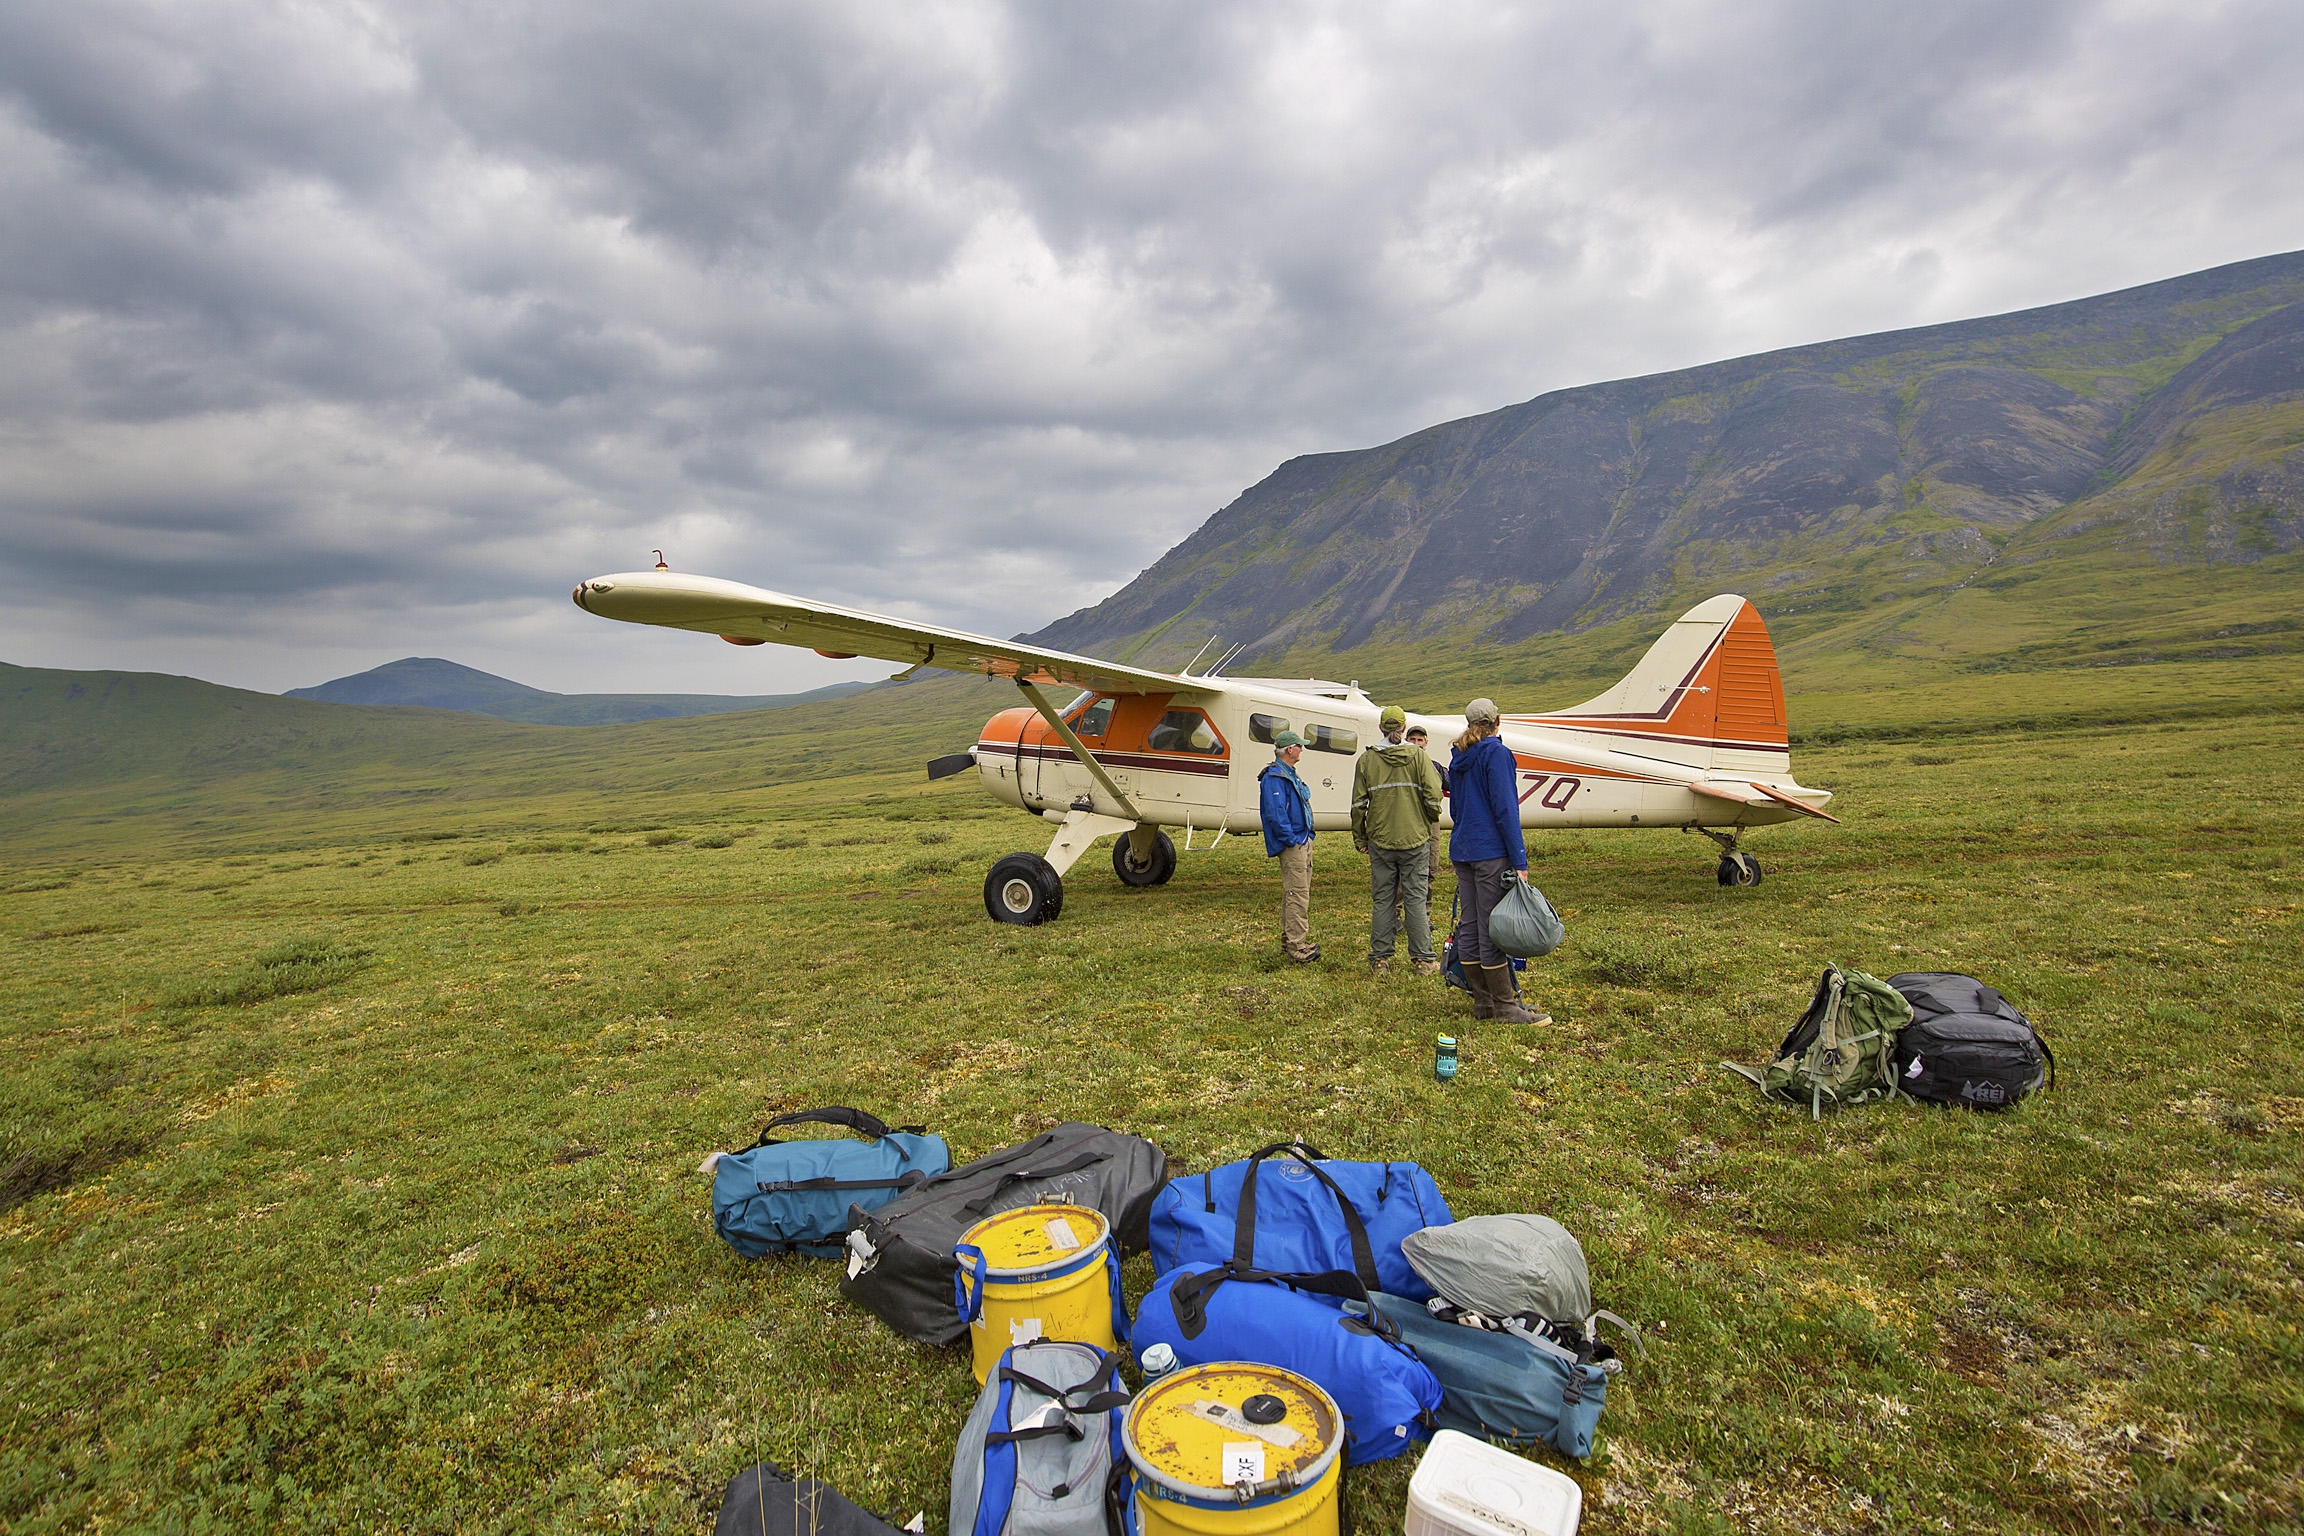 Unloading the Bush Plane in Gates of the Arctic National Park